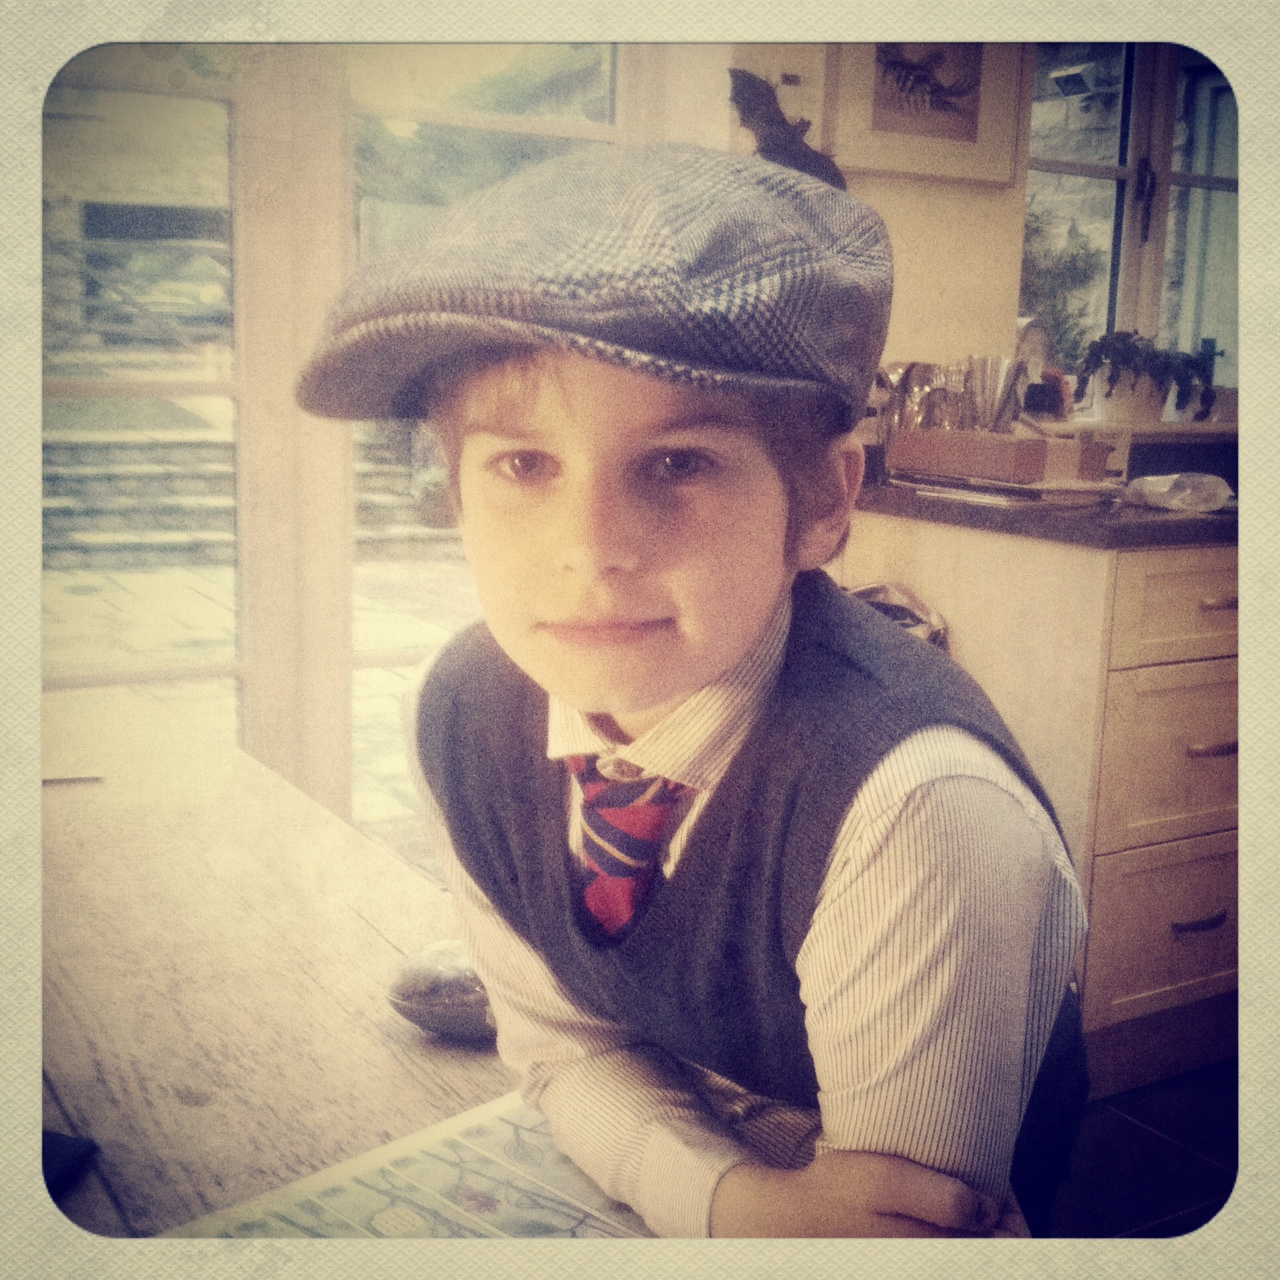 Remembering the bravery     Boy 1 dressed up as an evacuee today for his school trip as part of the Year 3 topic on World War Two. For a seven-year old boy, WW2 is topic heaven. He's been drawing gas masks, printing photographs of spitfires and building blanket Anderson shelters at every opportunity.     He's playing an evacuee in the school Christmas production too. All this has made us both realise how brave the children who were evacuated during the War must have been. Children no older than my own sent off on a journey to some unknown place, some with little brothers in tow, labels on their blazers and gas masks around their necks. It must have been terrifying. And as for the anxious, desperate mothers they left behind, well, I am in awe of their amazing courage, stoicism and fortitude in desperate times.     We are the lucky generation and I am eternally grateful to those who struggled before us to make our times easier.